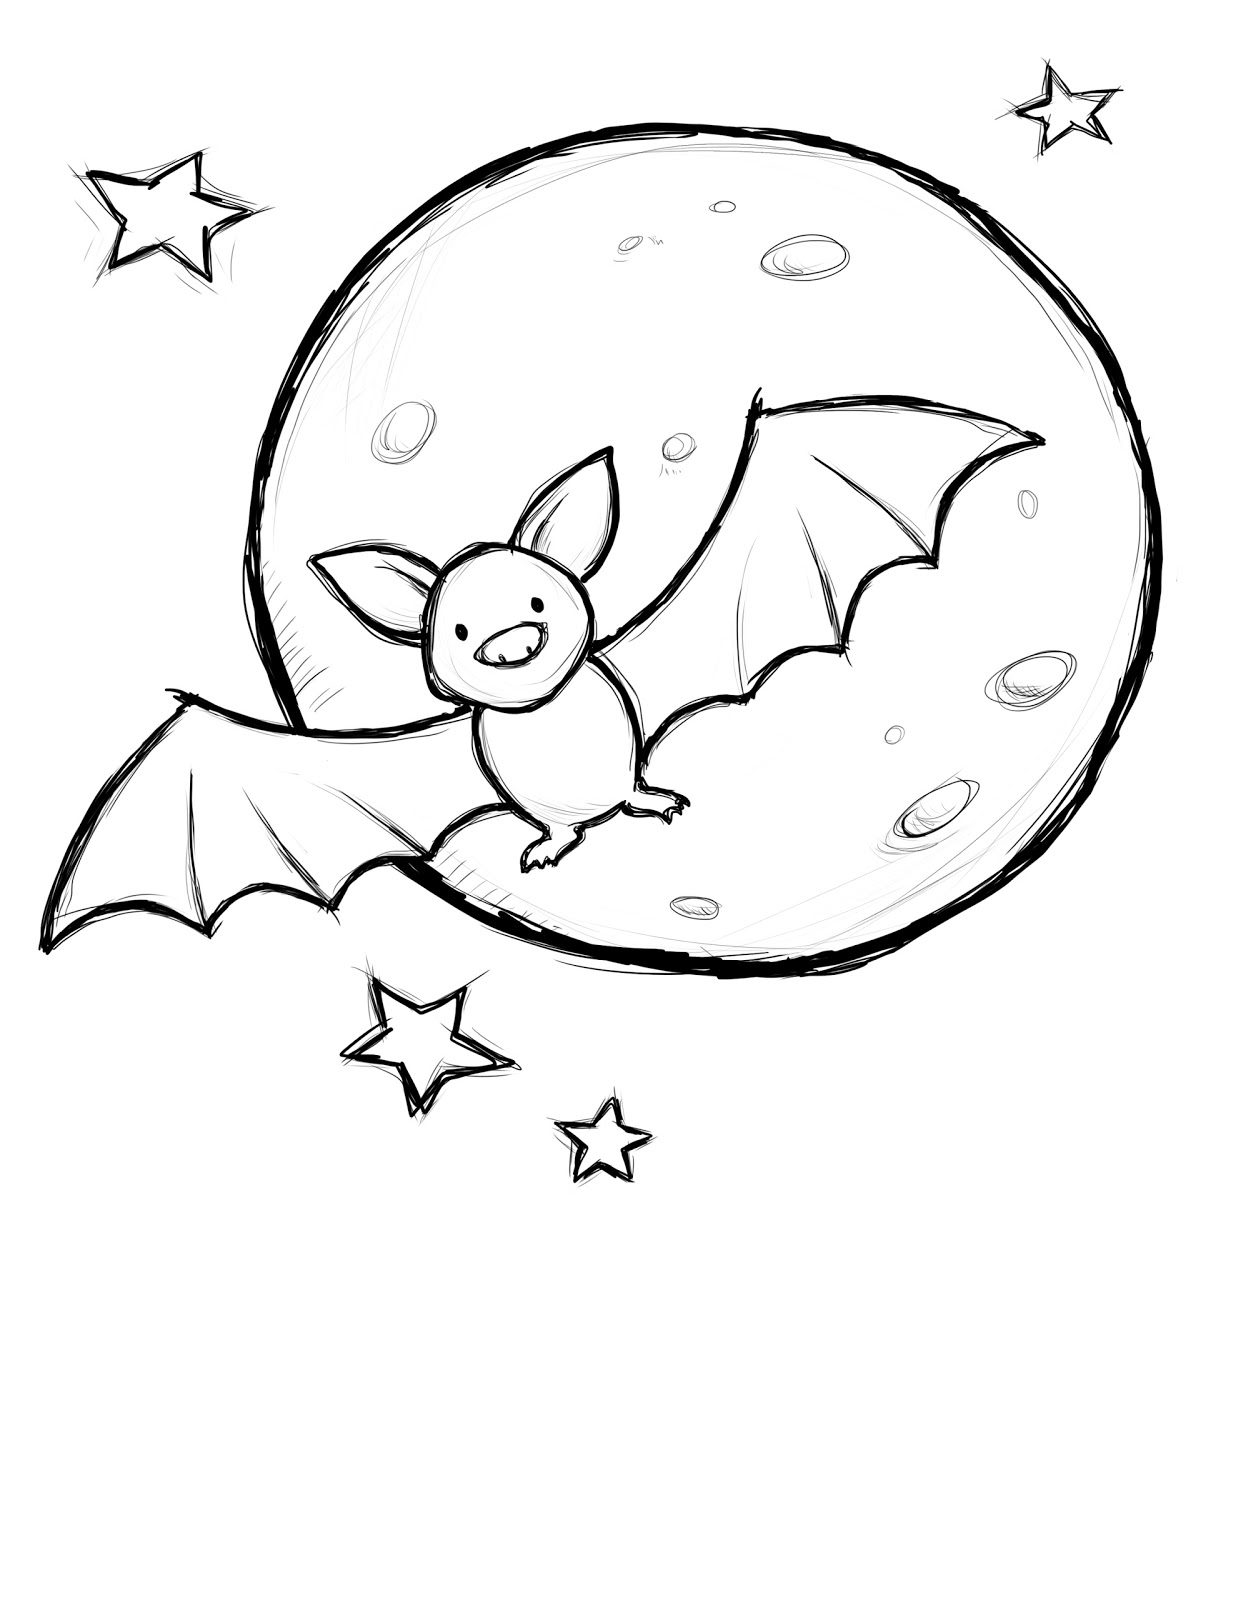 bats coloring pages to print halloween bat coloring page twisty noodle pages to coloring print bats